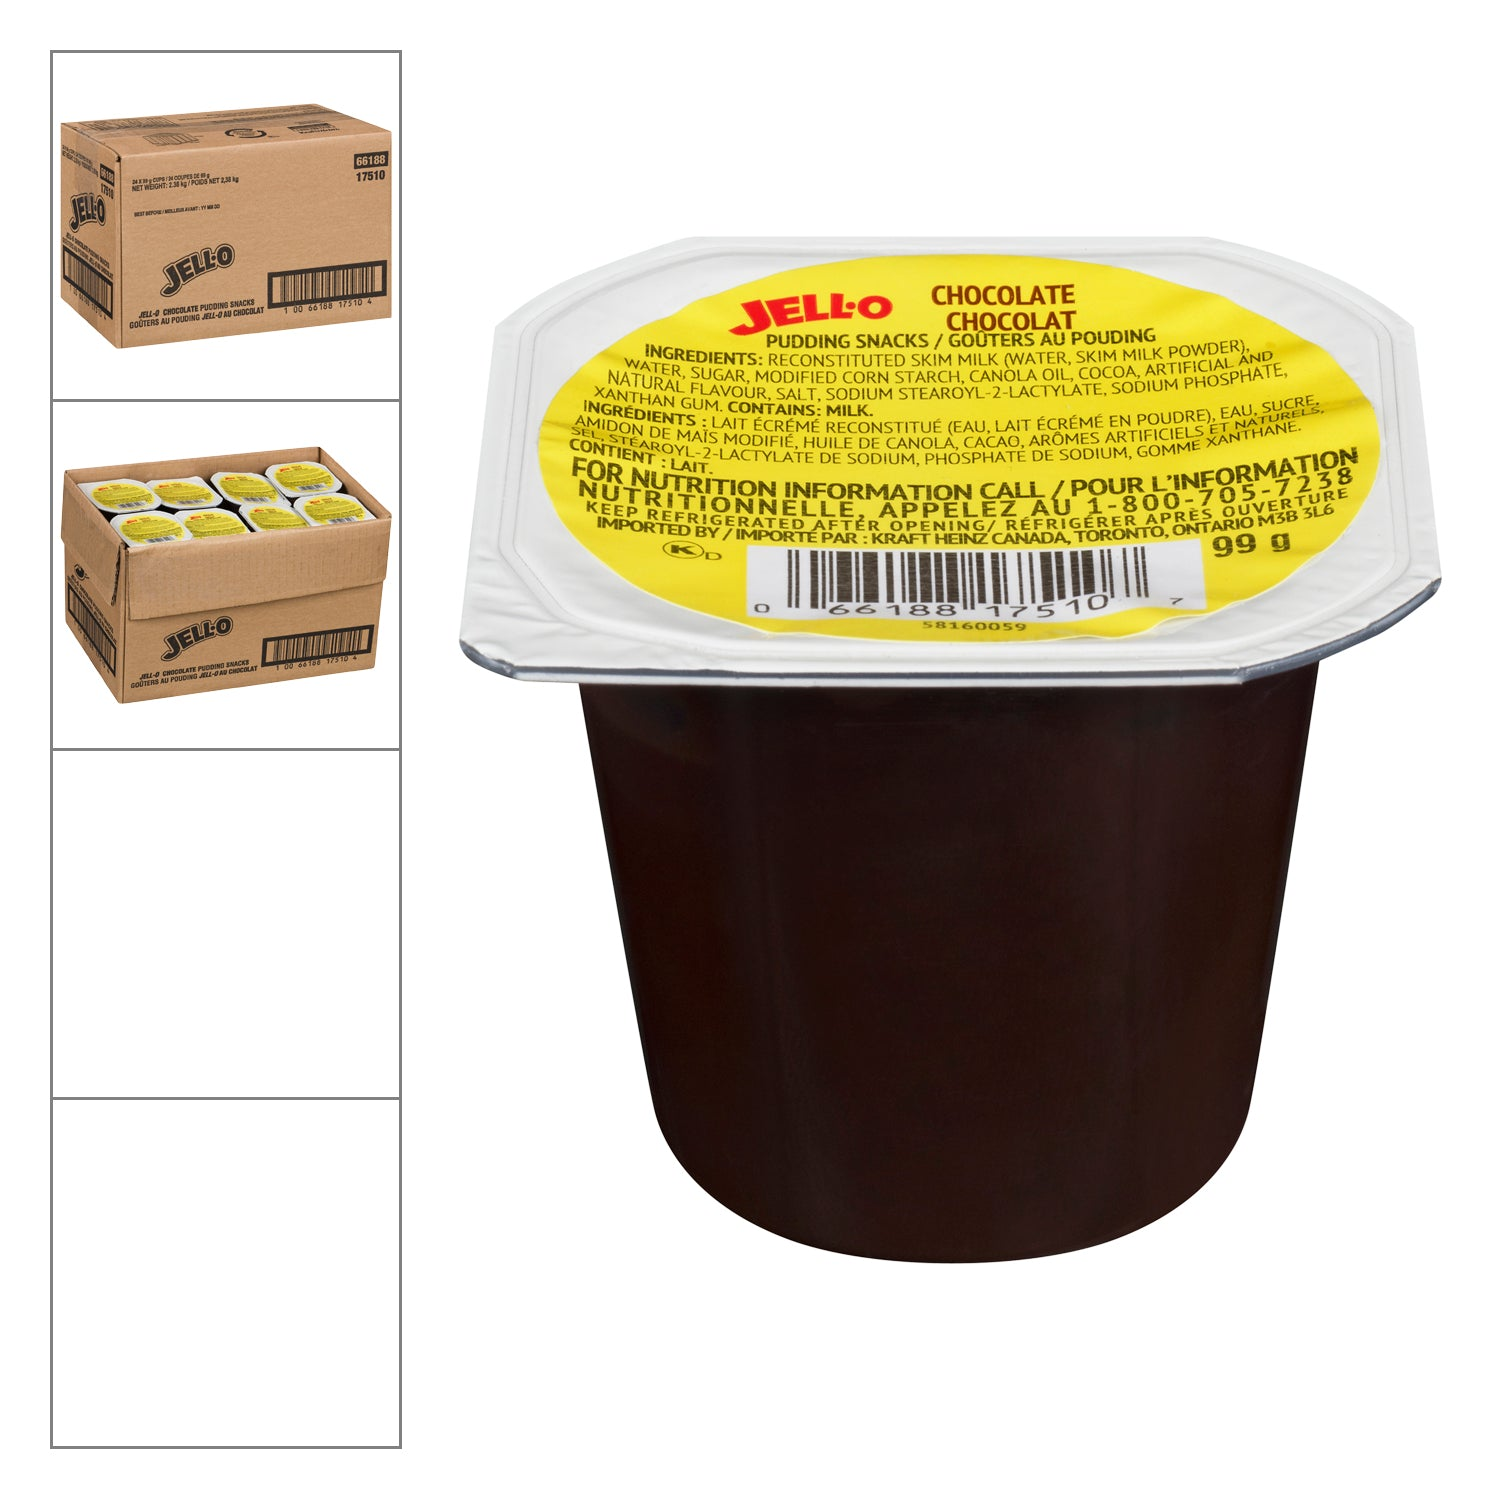 Kraft Chocolate Pudding Cup 99 g - 24 Pack [$0.62/each]